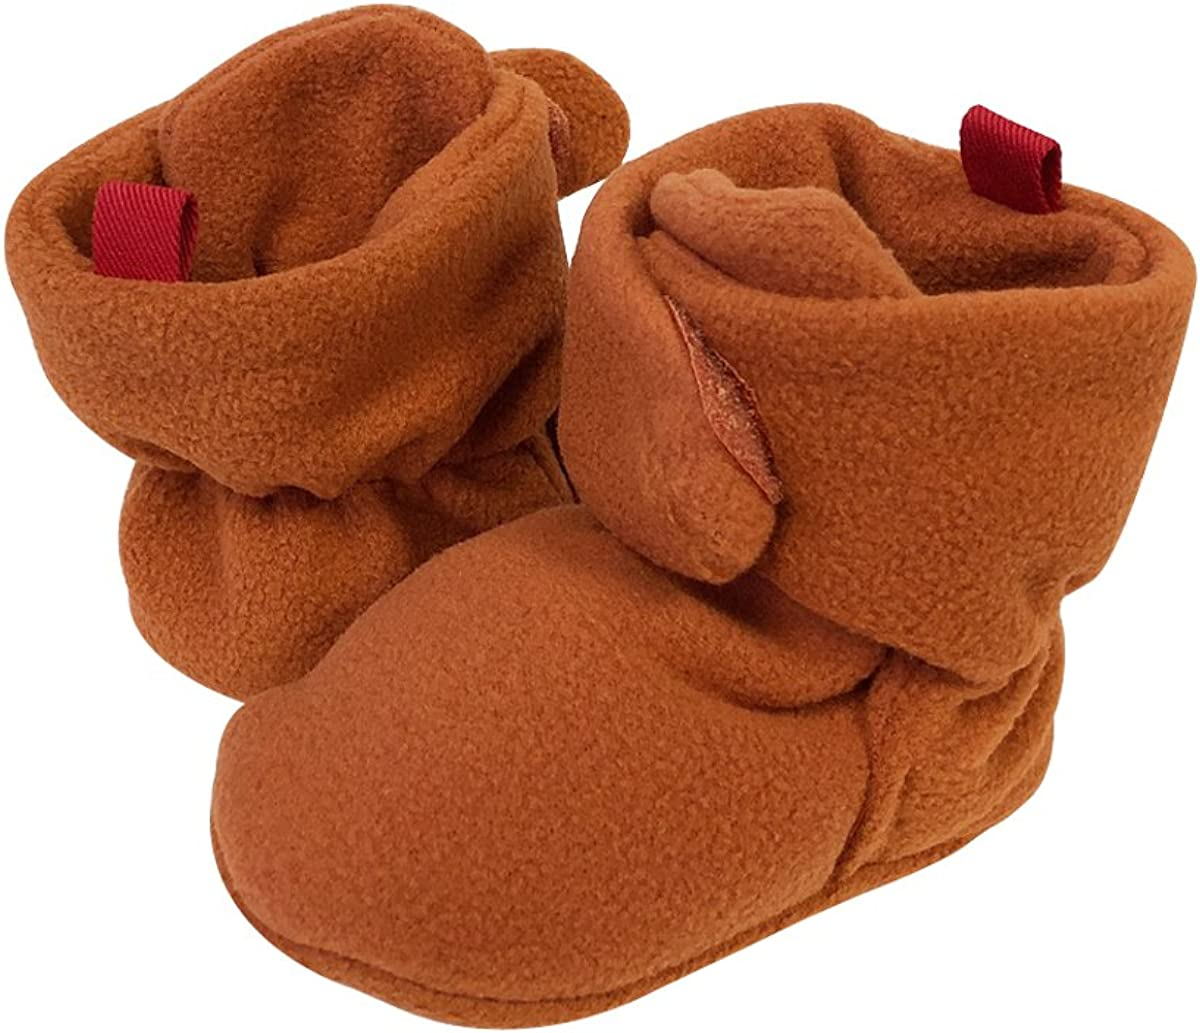 Bowbear Soft Fleece Booties with Non-Skid Material